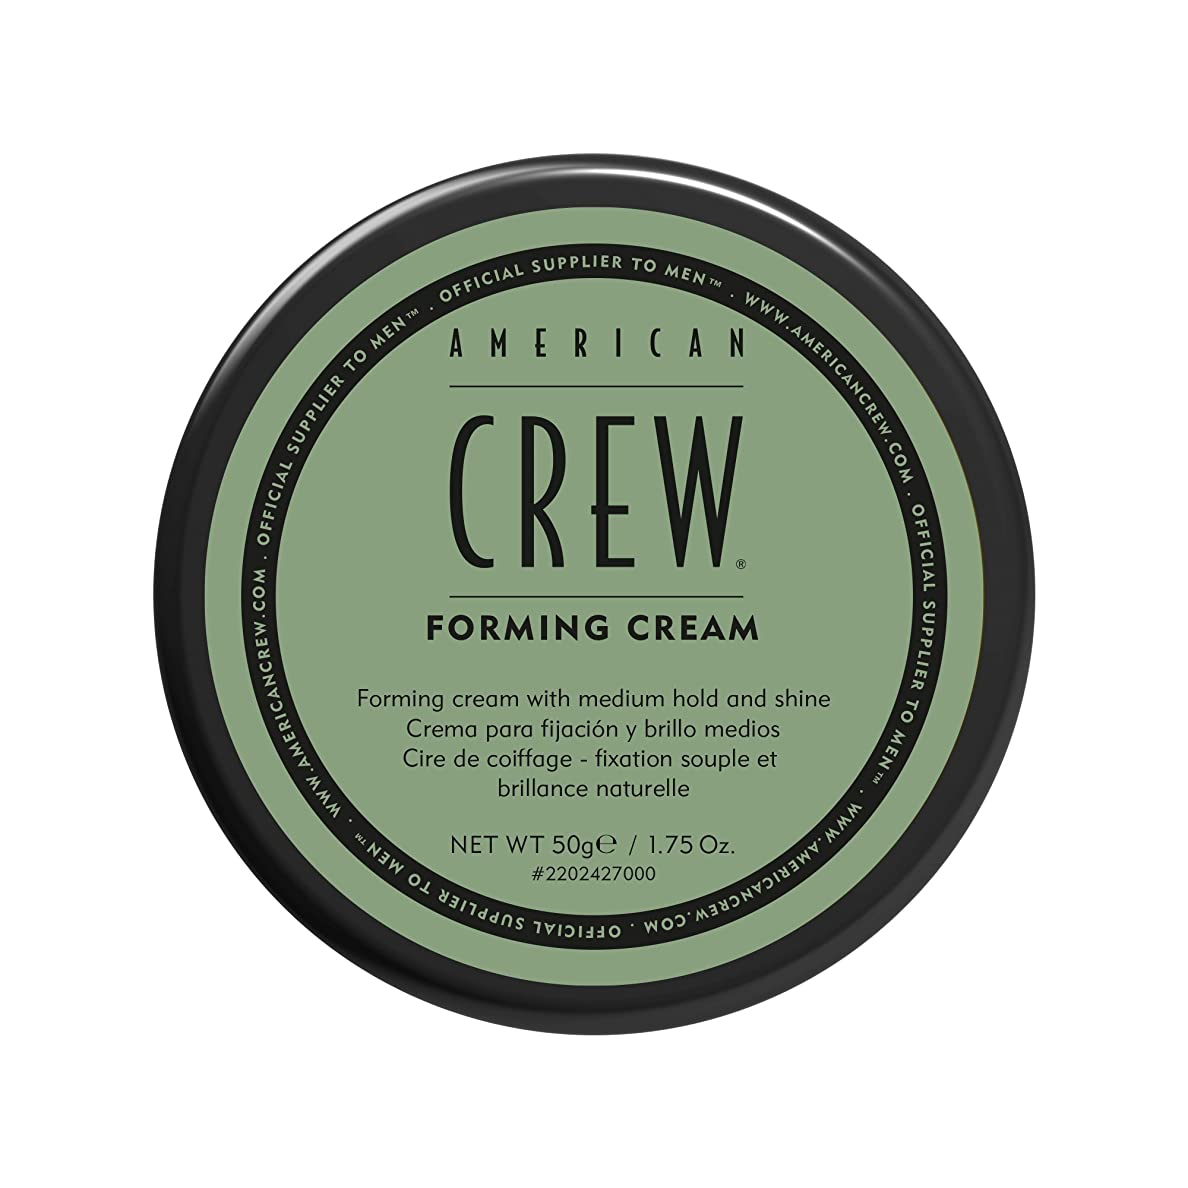 重大転用ポスト印象派by American Crew FORMING CREAM 1.75 OZ by AMERICAN CREW